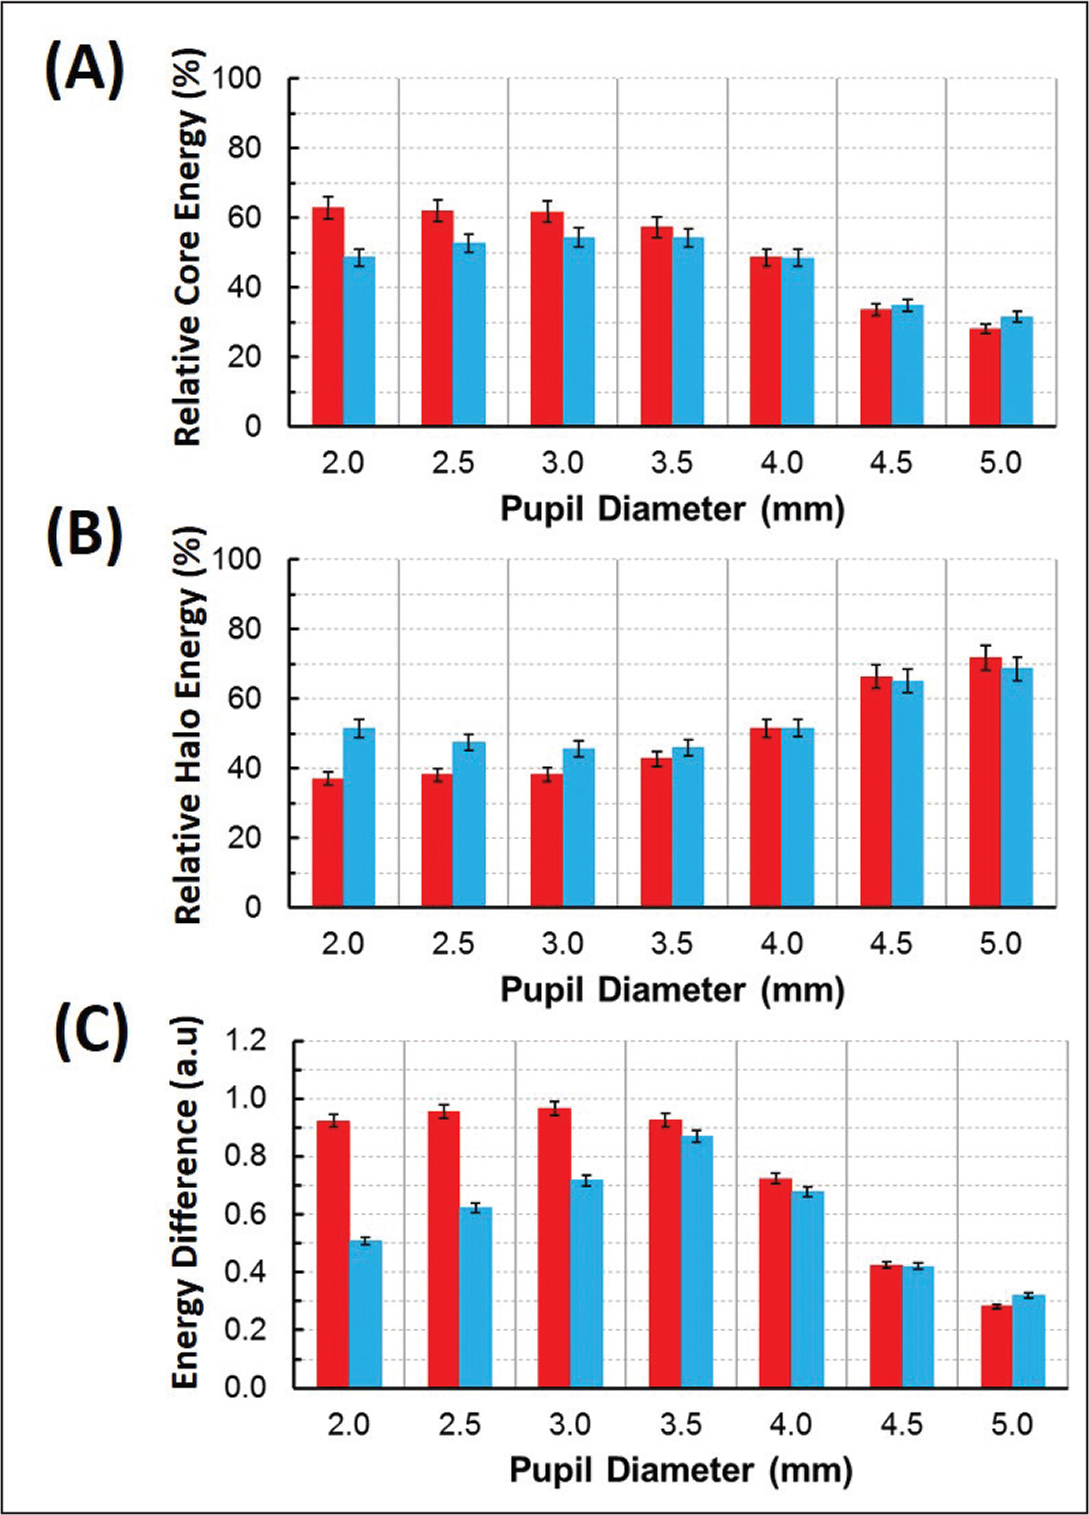 Relative core (A) and halo energy (B) to total energy (all calculated with Equation 1) and (C) non-normalized energy difference between core and halo, versus IOL-pupil size, obtained with the ZCBIOL (red bars) and ICB-IOL (blue bars) (Johnson & Johnson Vision, Inc).